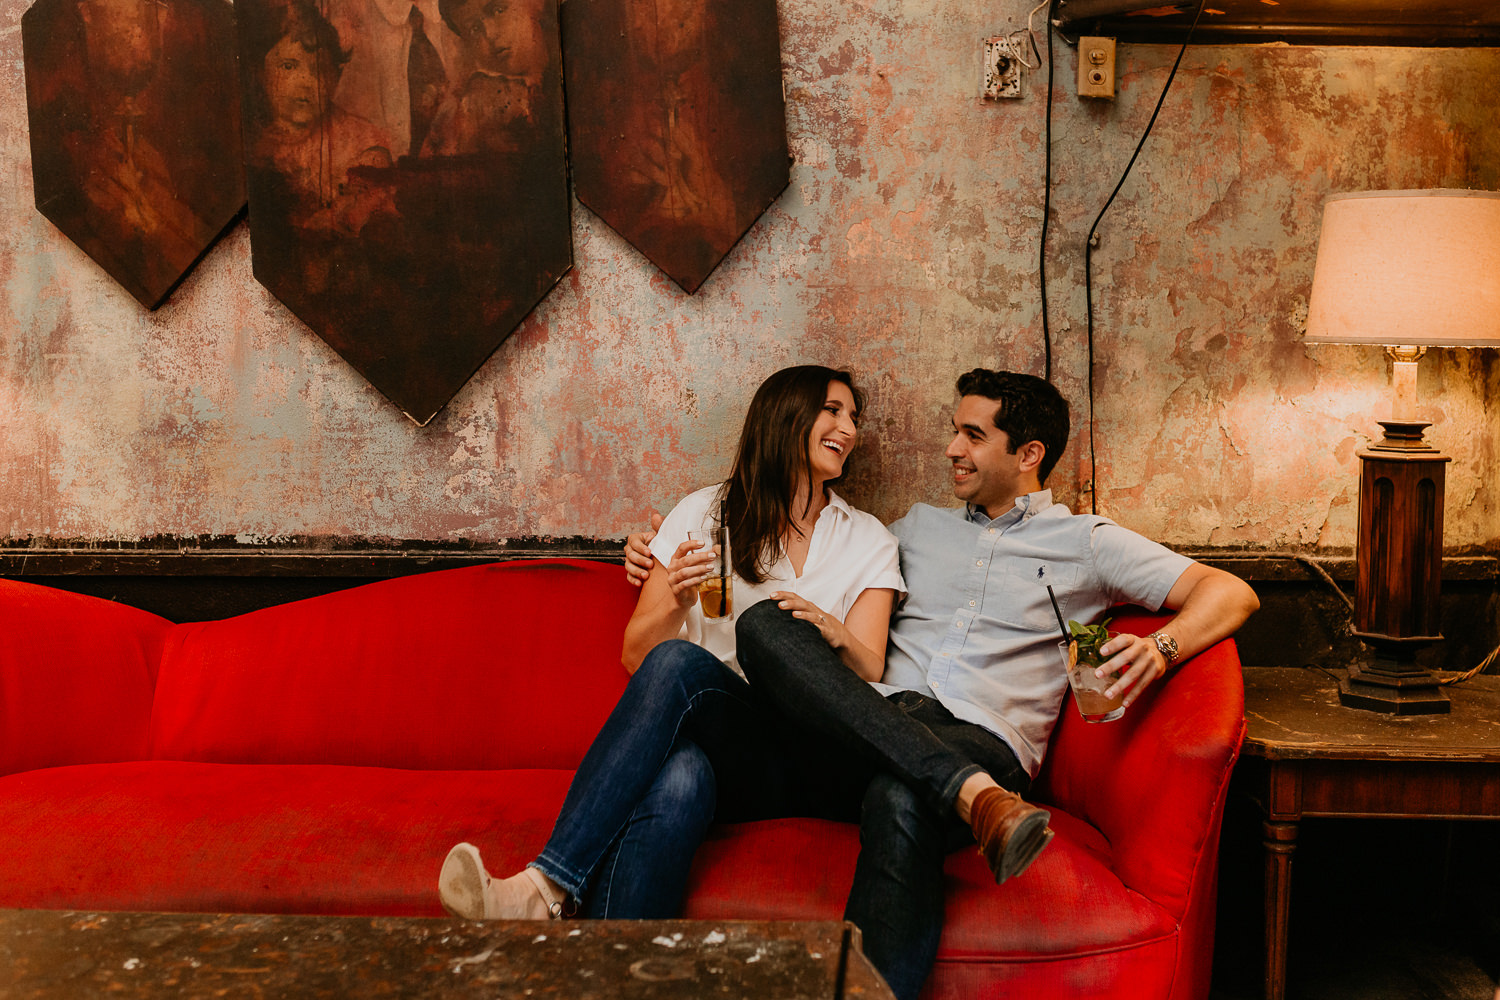 wide of couple laughing at each other on red couch at La Factoria cocktail bar